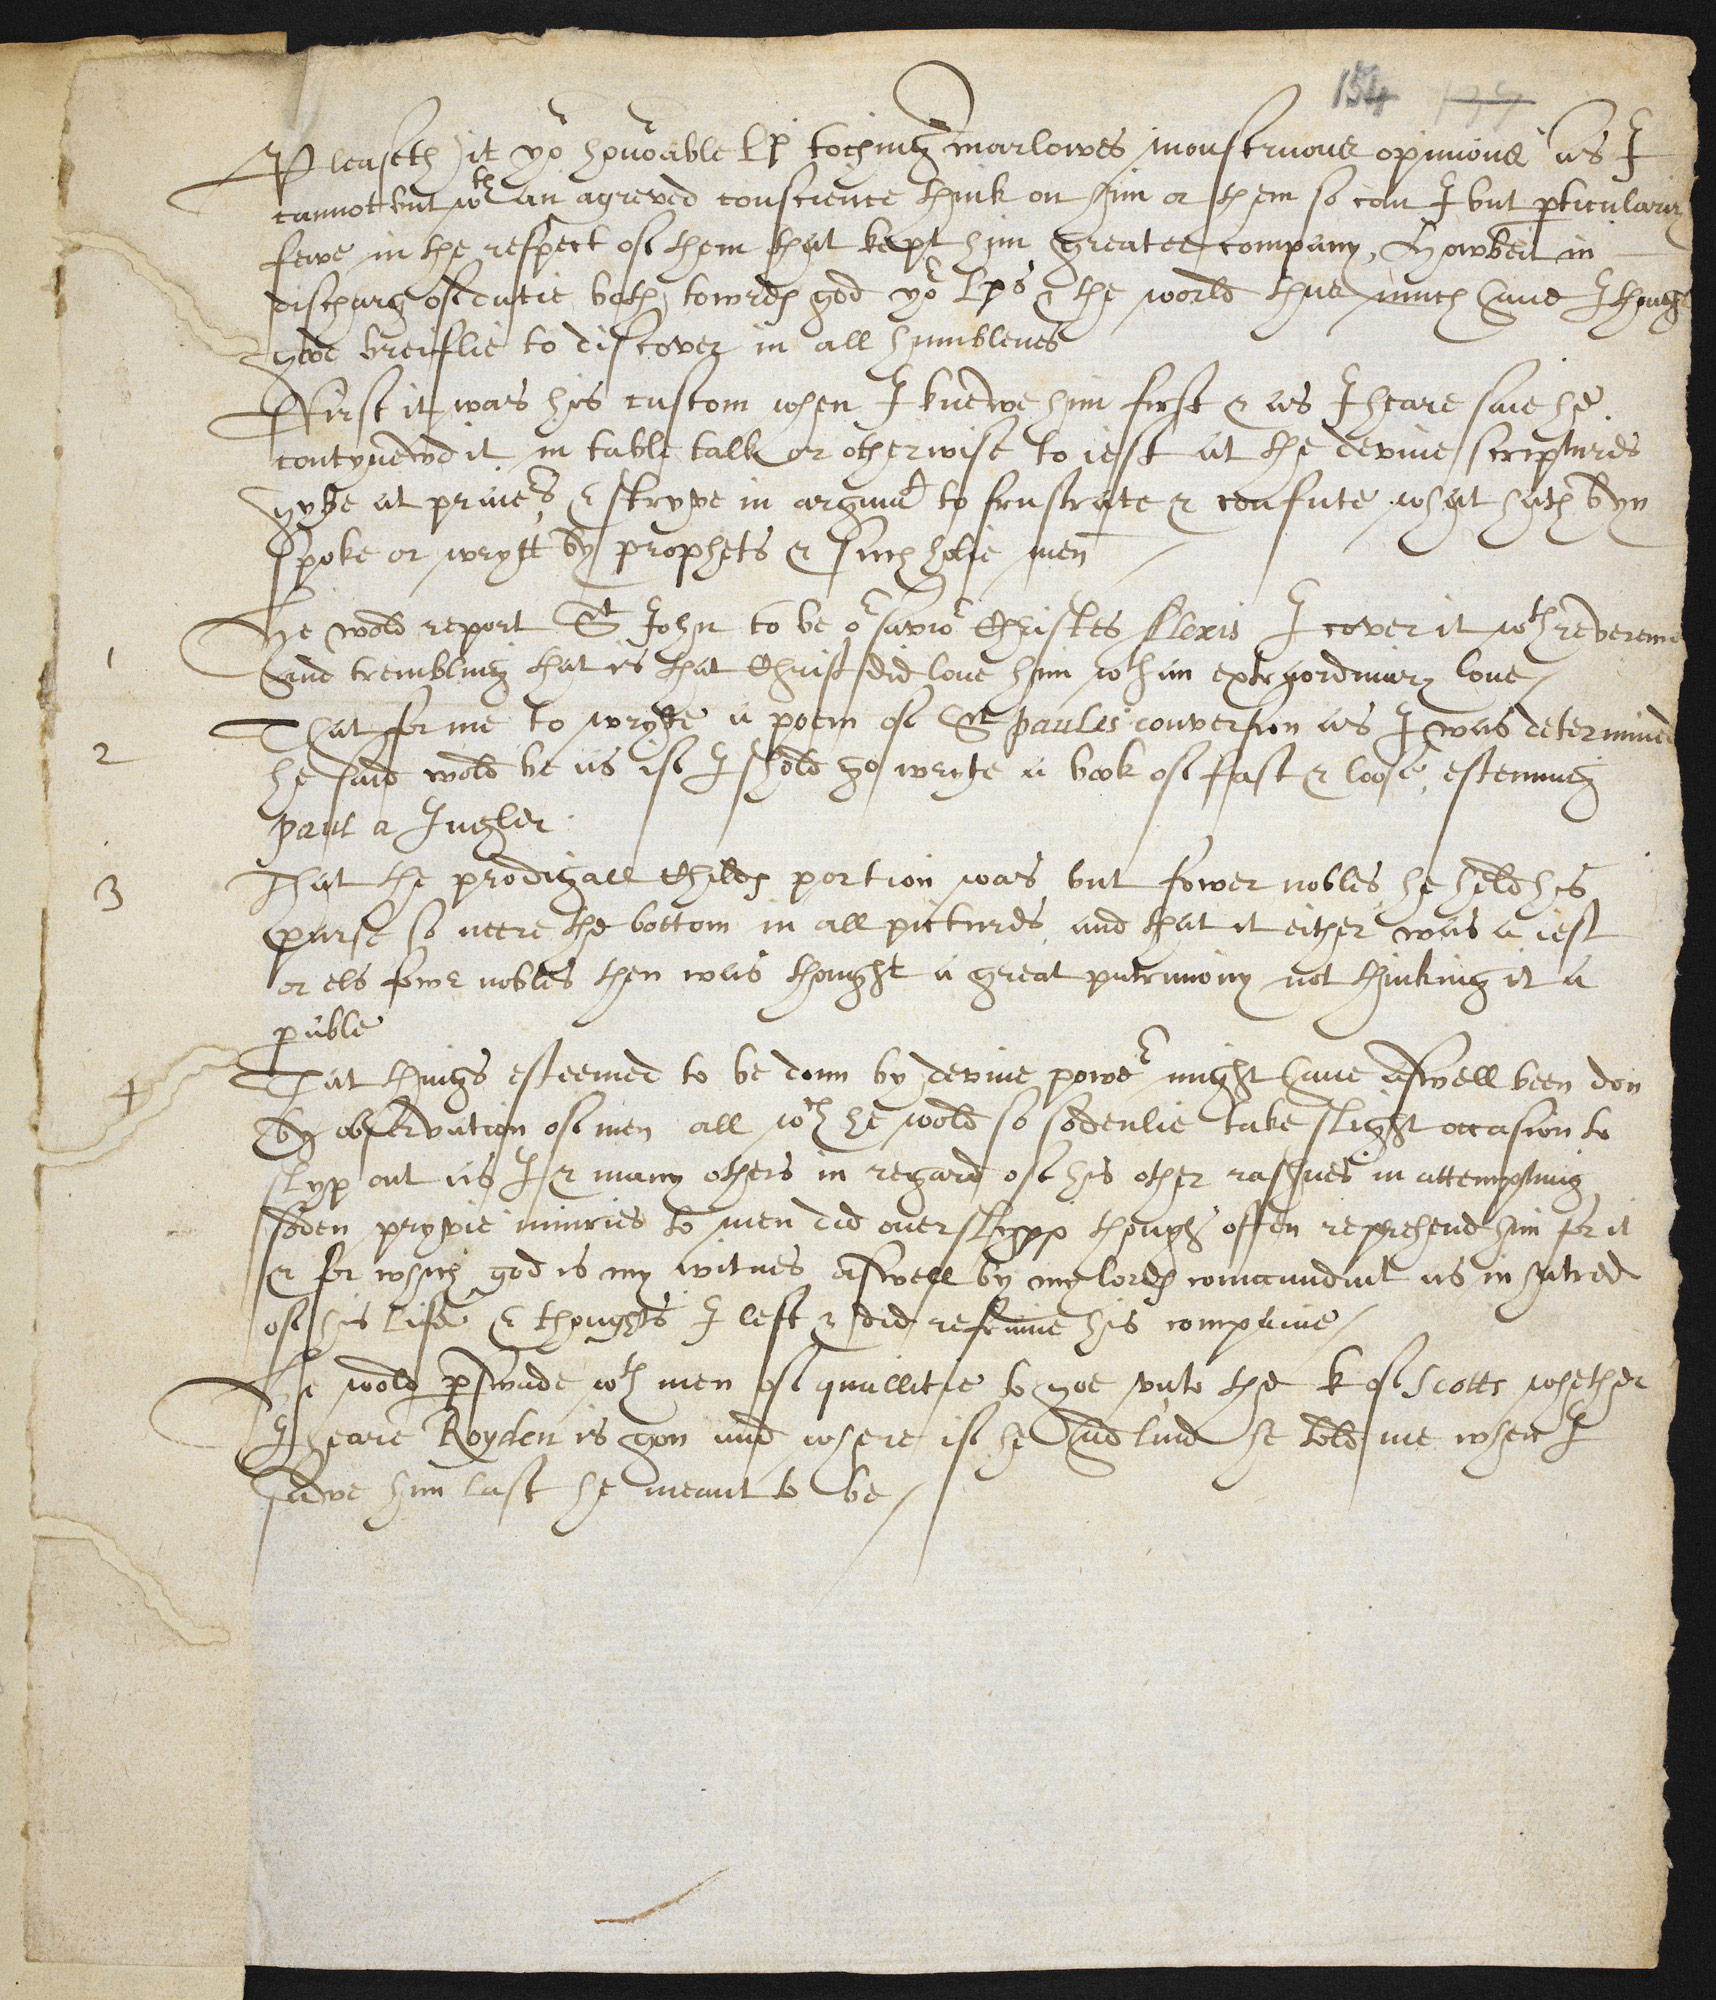 Accusations against Christopher Marlowe by Richard Baines and others